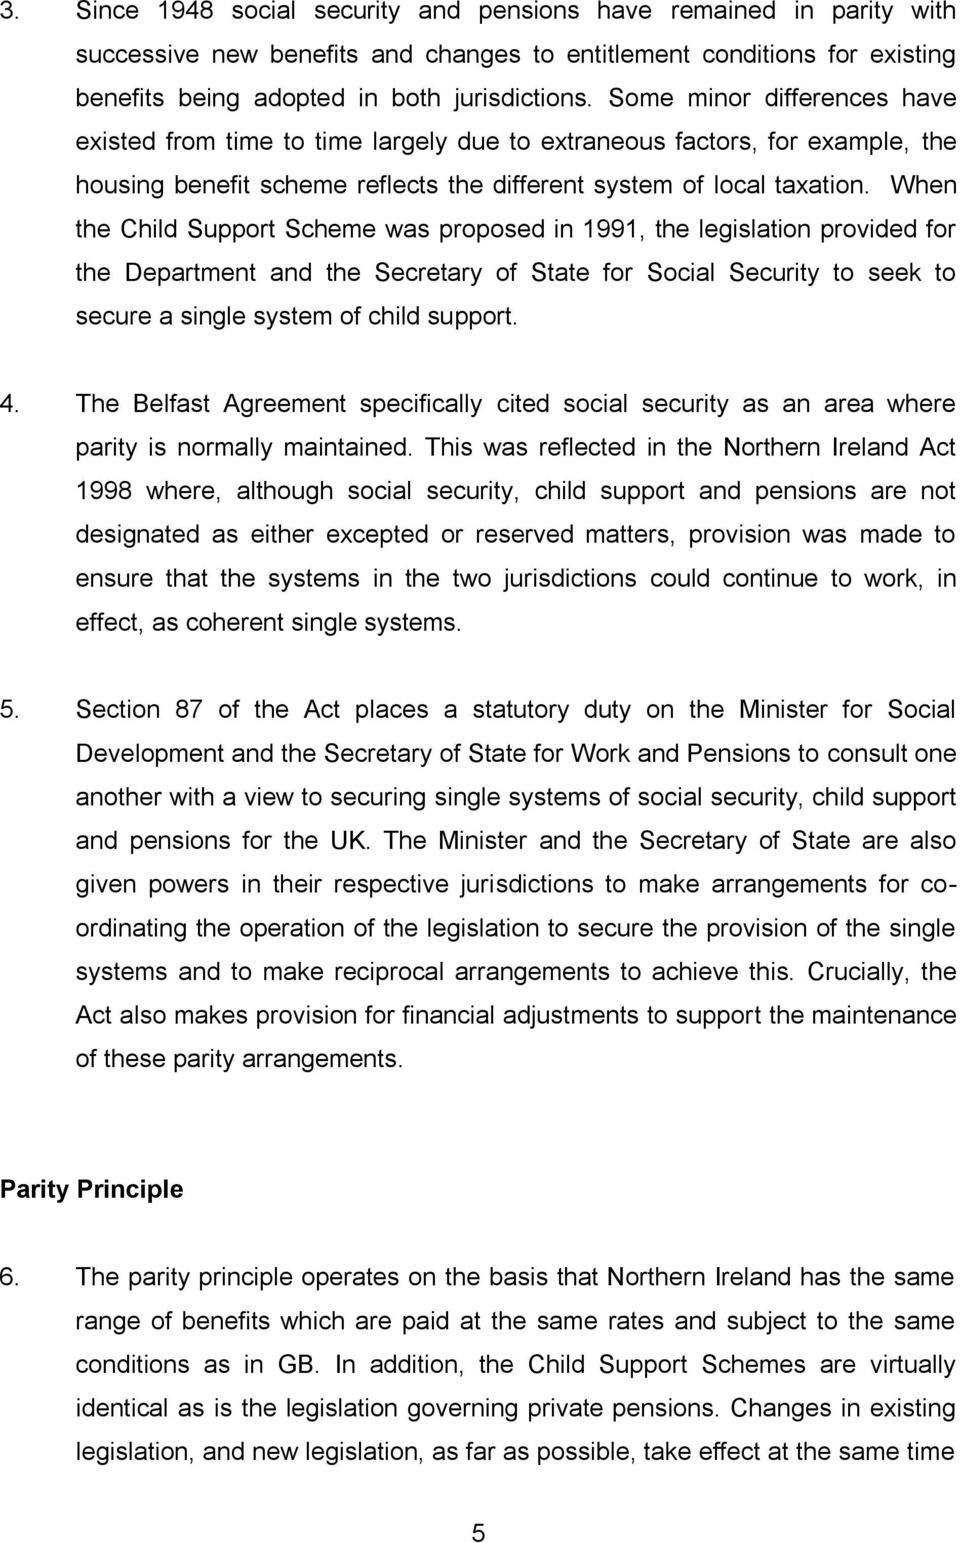 When the Child Support Scheme was proposed in 1991, the legislation provided for the Department and the Secretary of State for Social Security to seek to secure a single system of child support. 4.